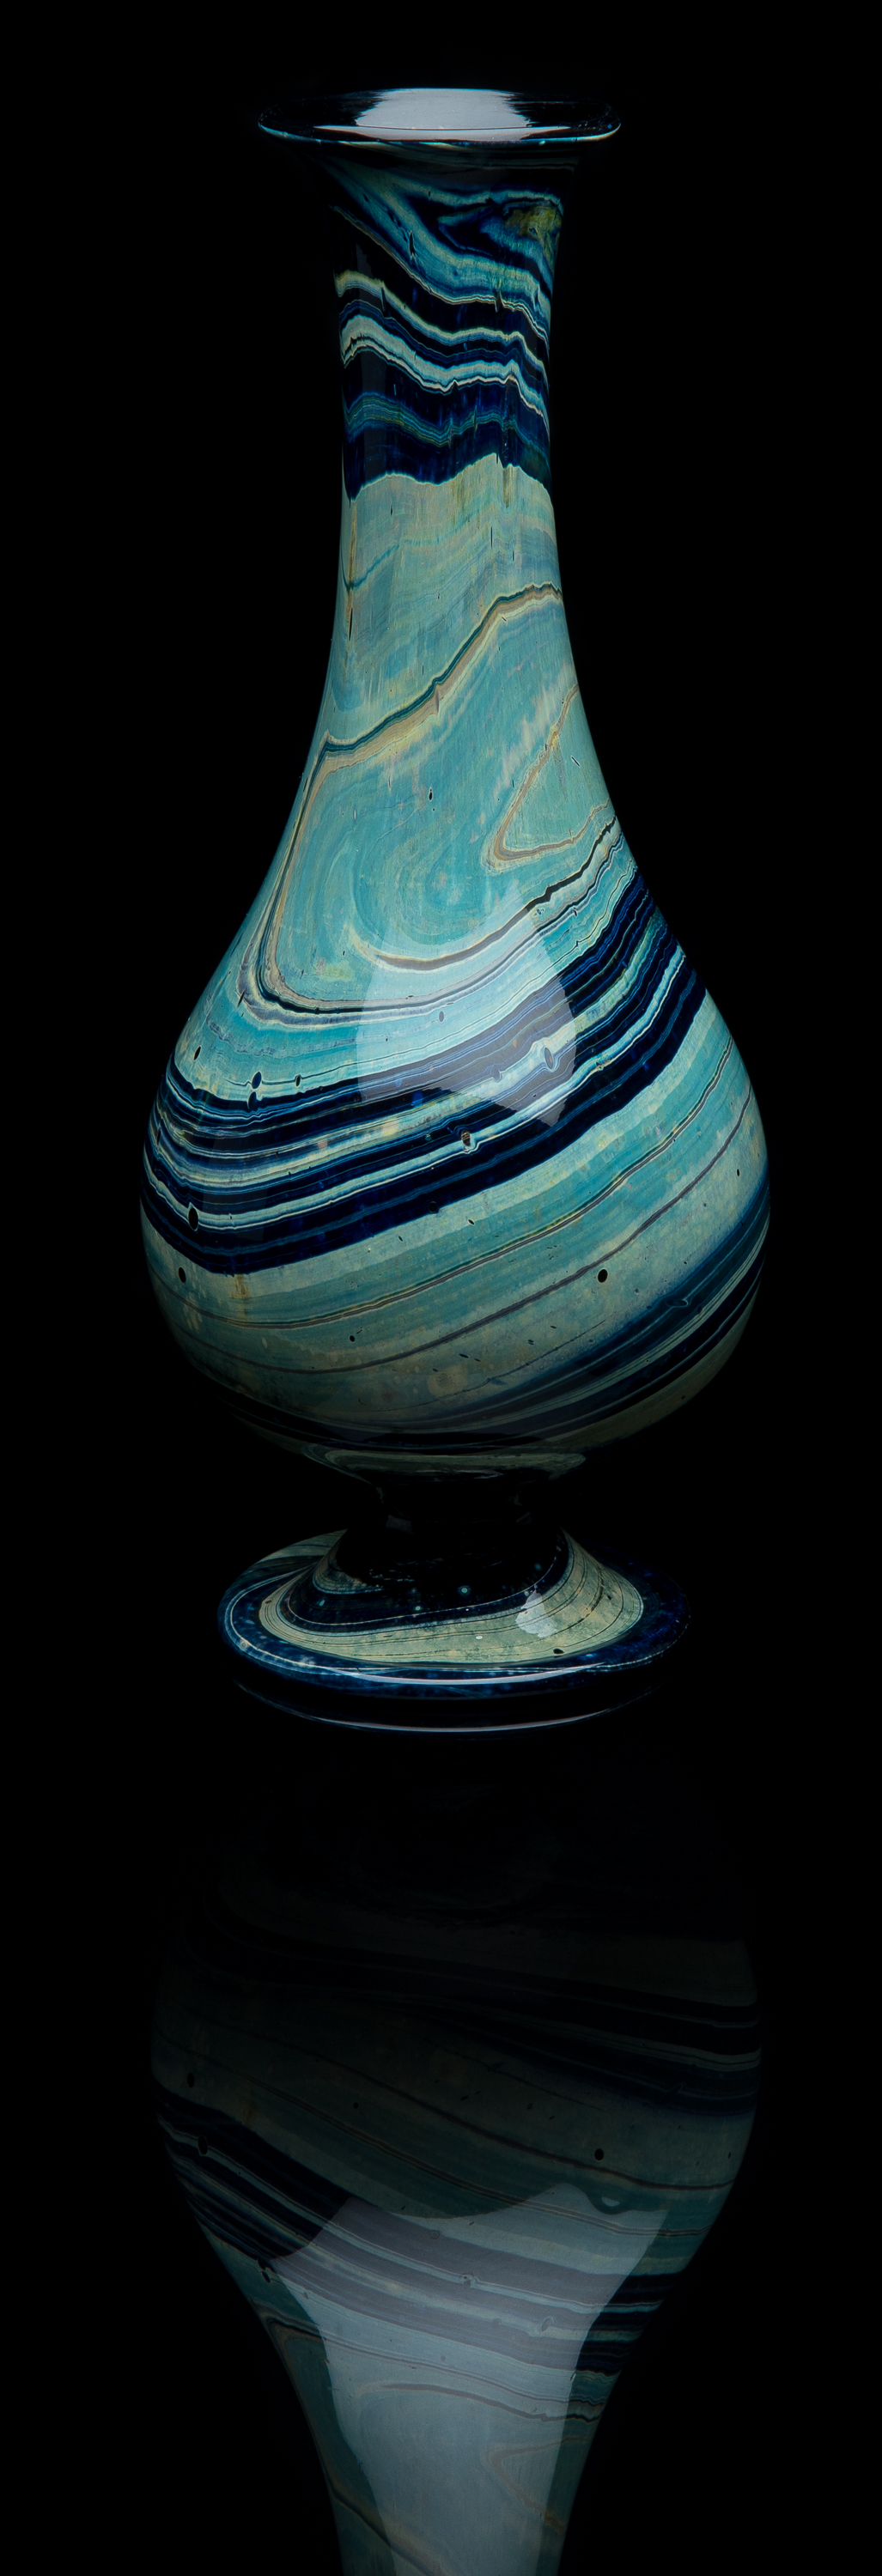 Unknown,  Blue Chalcedony Vase  (circa 1900, glass, 10 inches), VV.1021